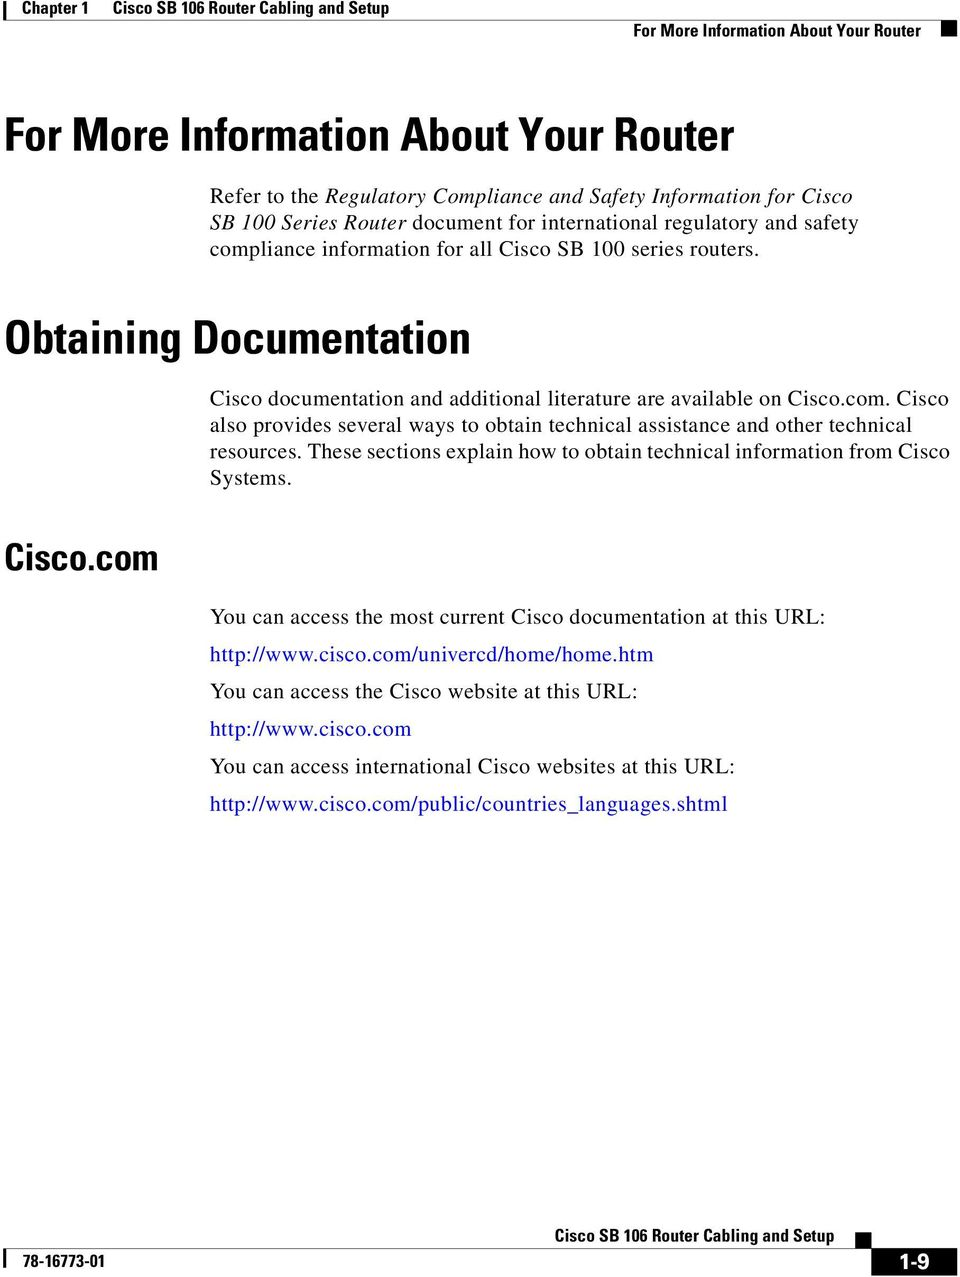 These sections explain how to obtain technical information from Cisco Systems. Cisco.com You can access the most current Cisco documentation at this URL: http://www.cisco.com/univercd/home/home.